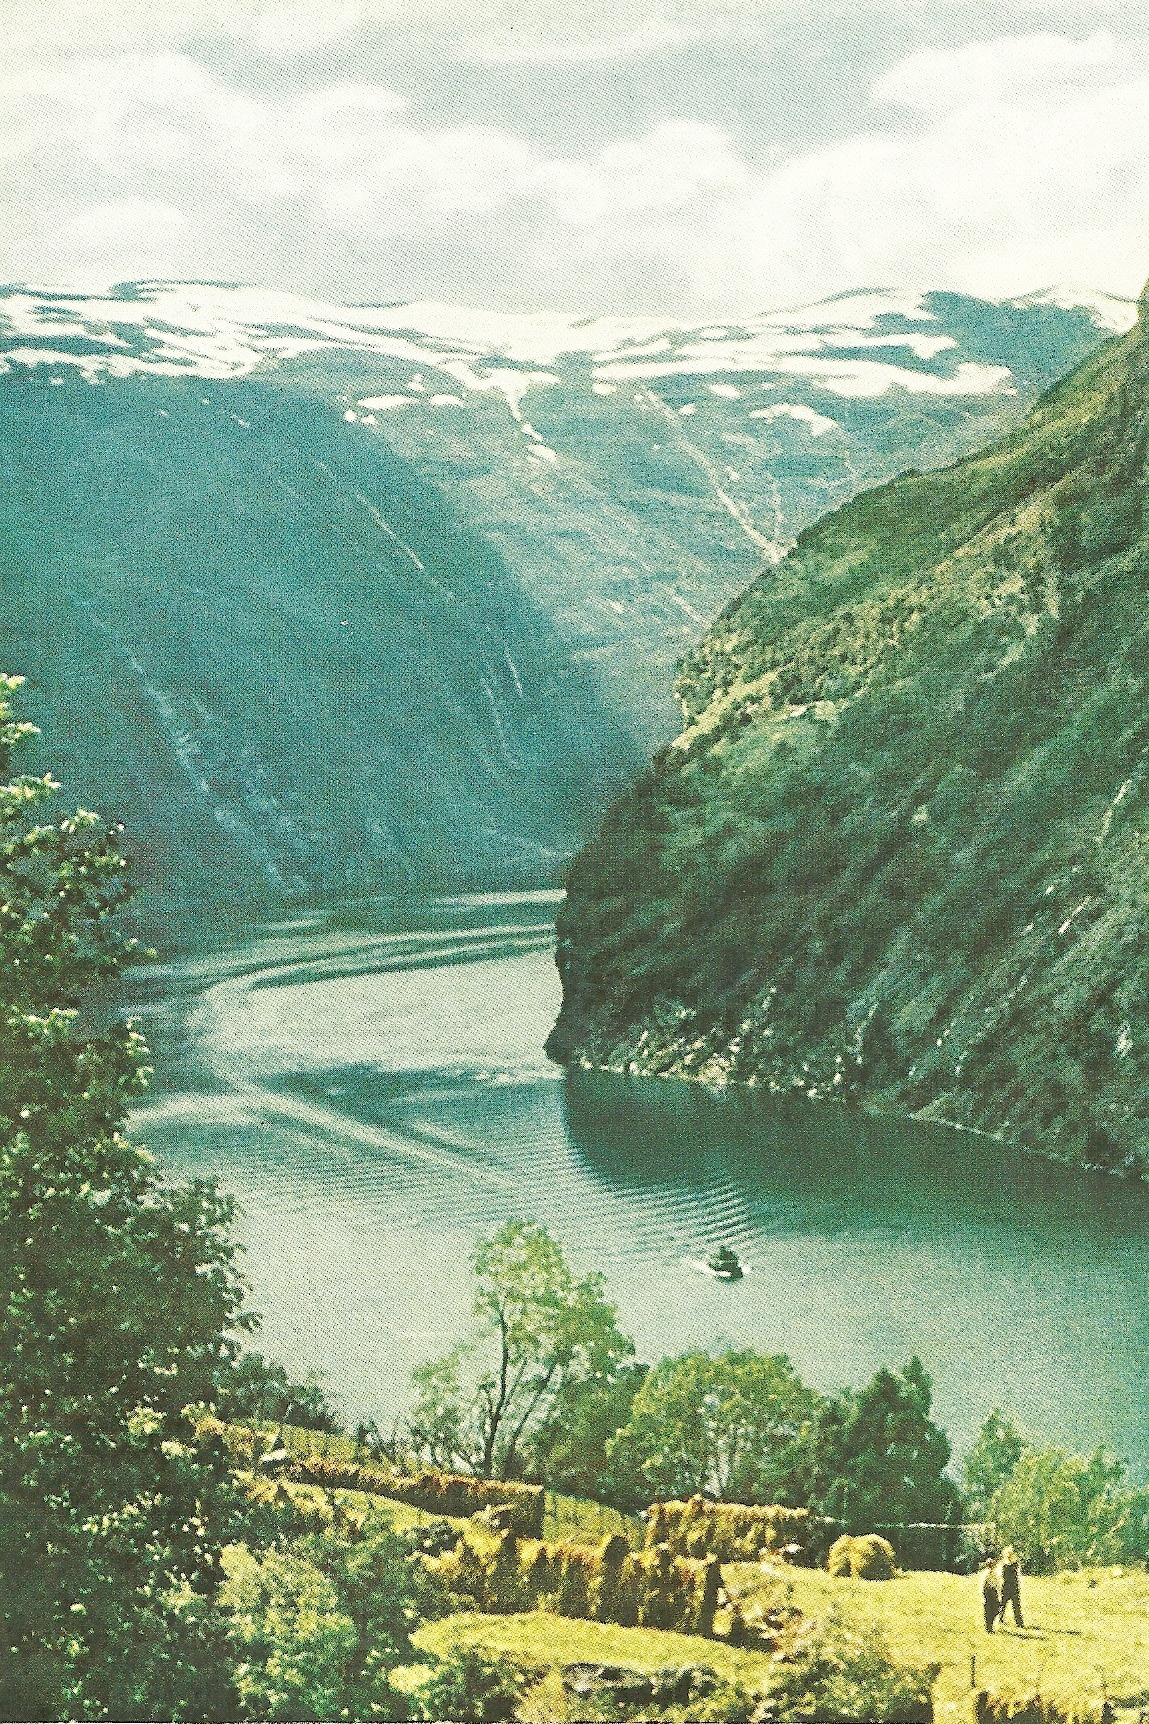 vintagenatgeographic:  Geiranger Fjord, Norway National Geographic | January 1957